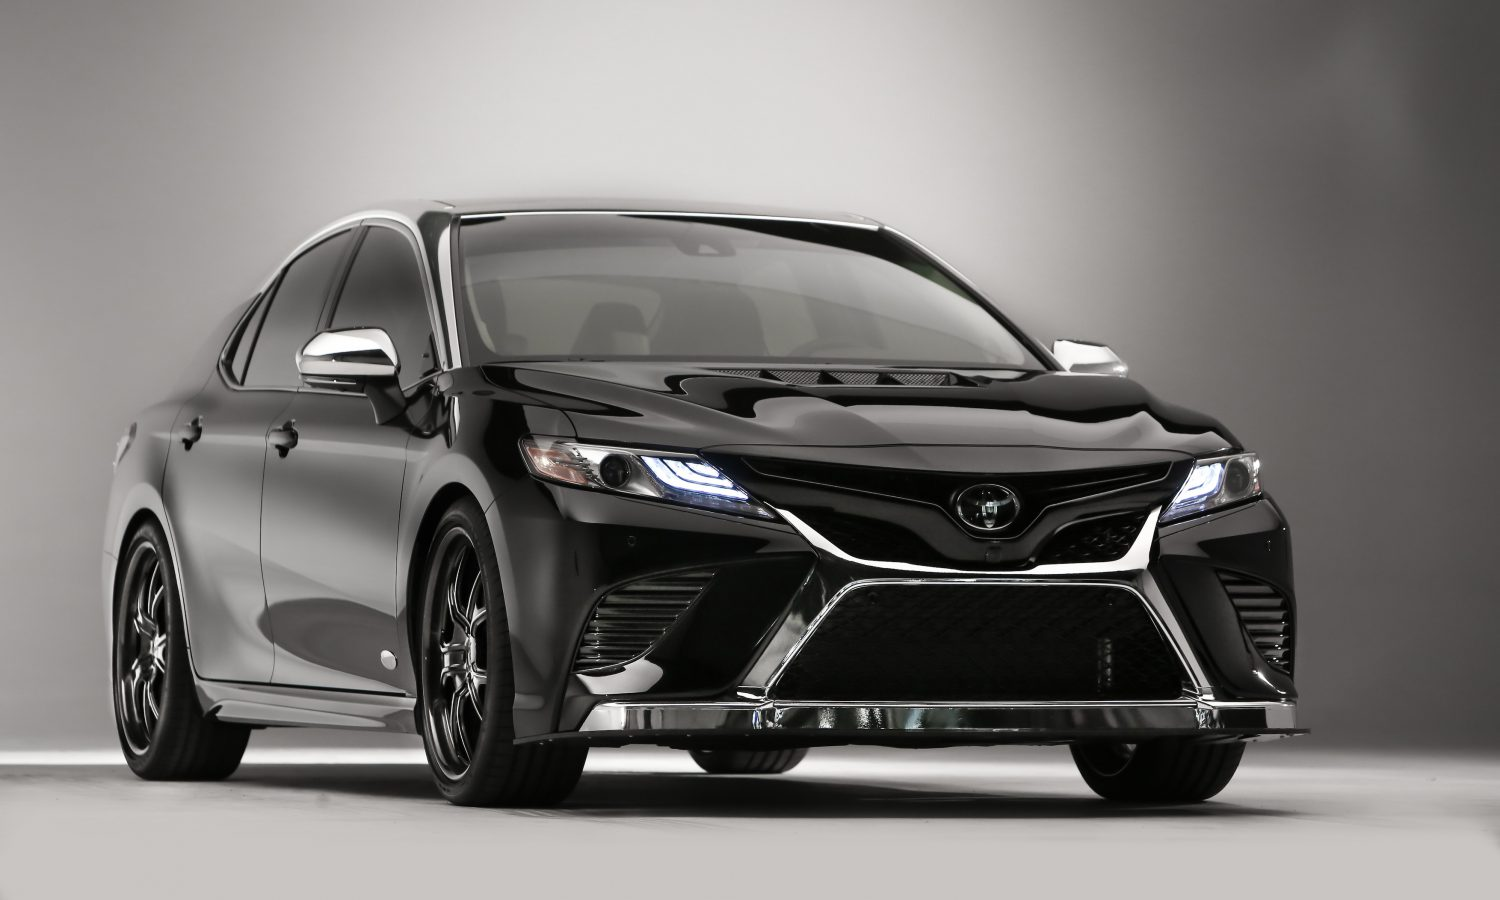 Kyle Busch Builds a one-of-a-kind 2018 Camry for SEMA 2017